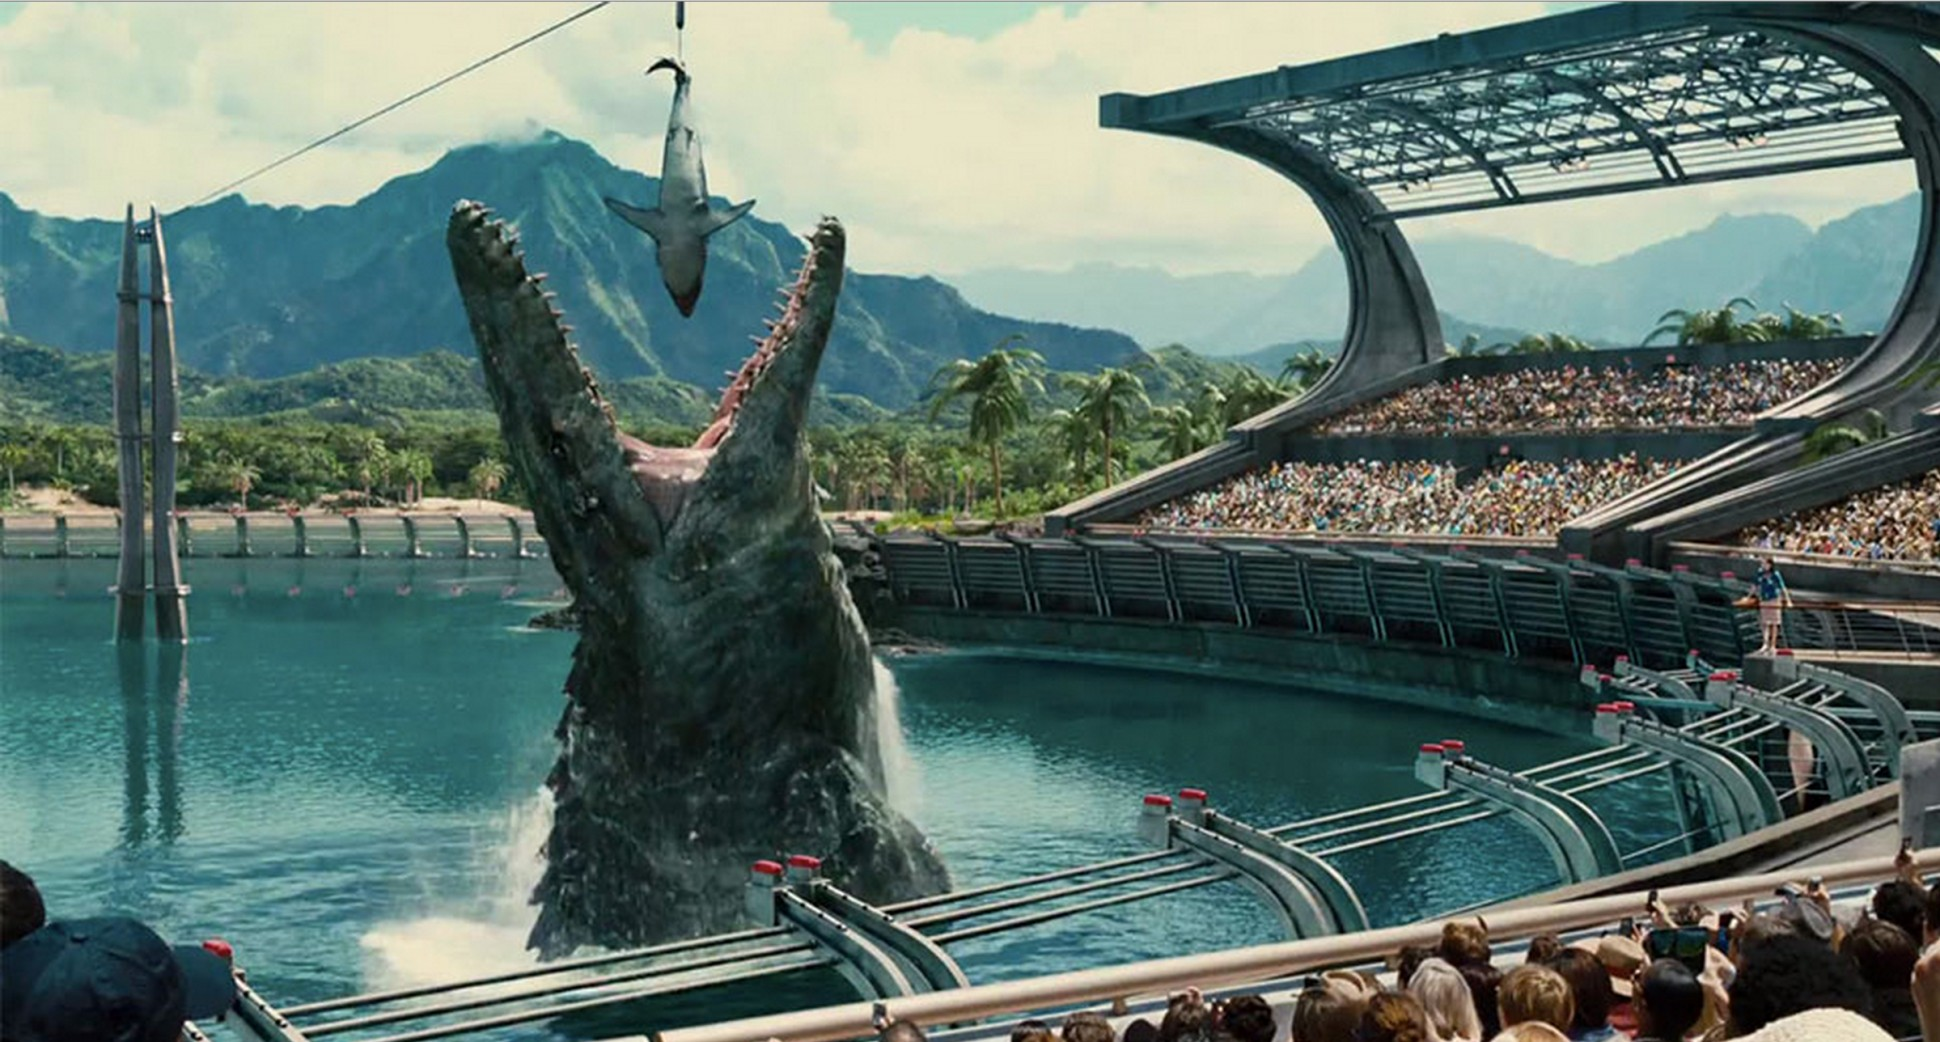 The Mosasaurus devours a shark in Jurassic World (2015)